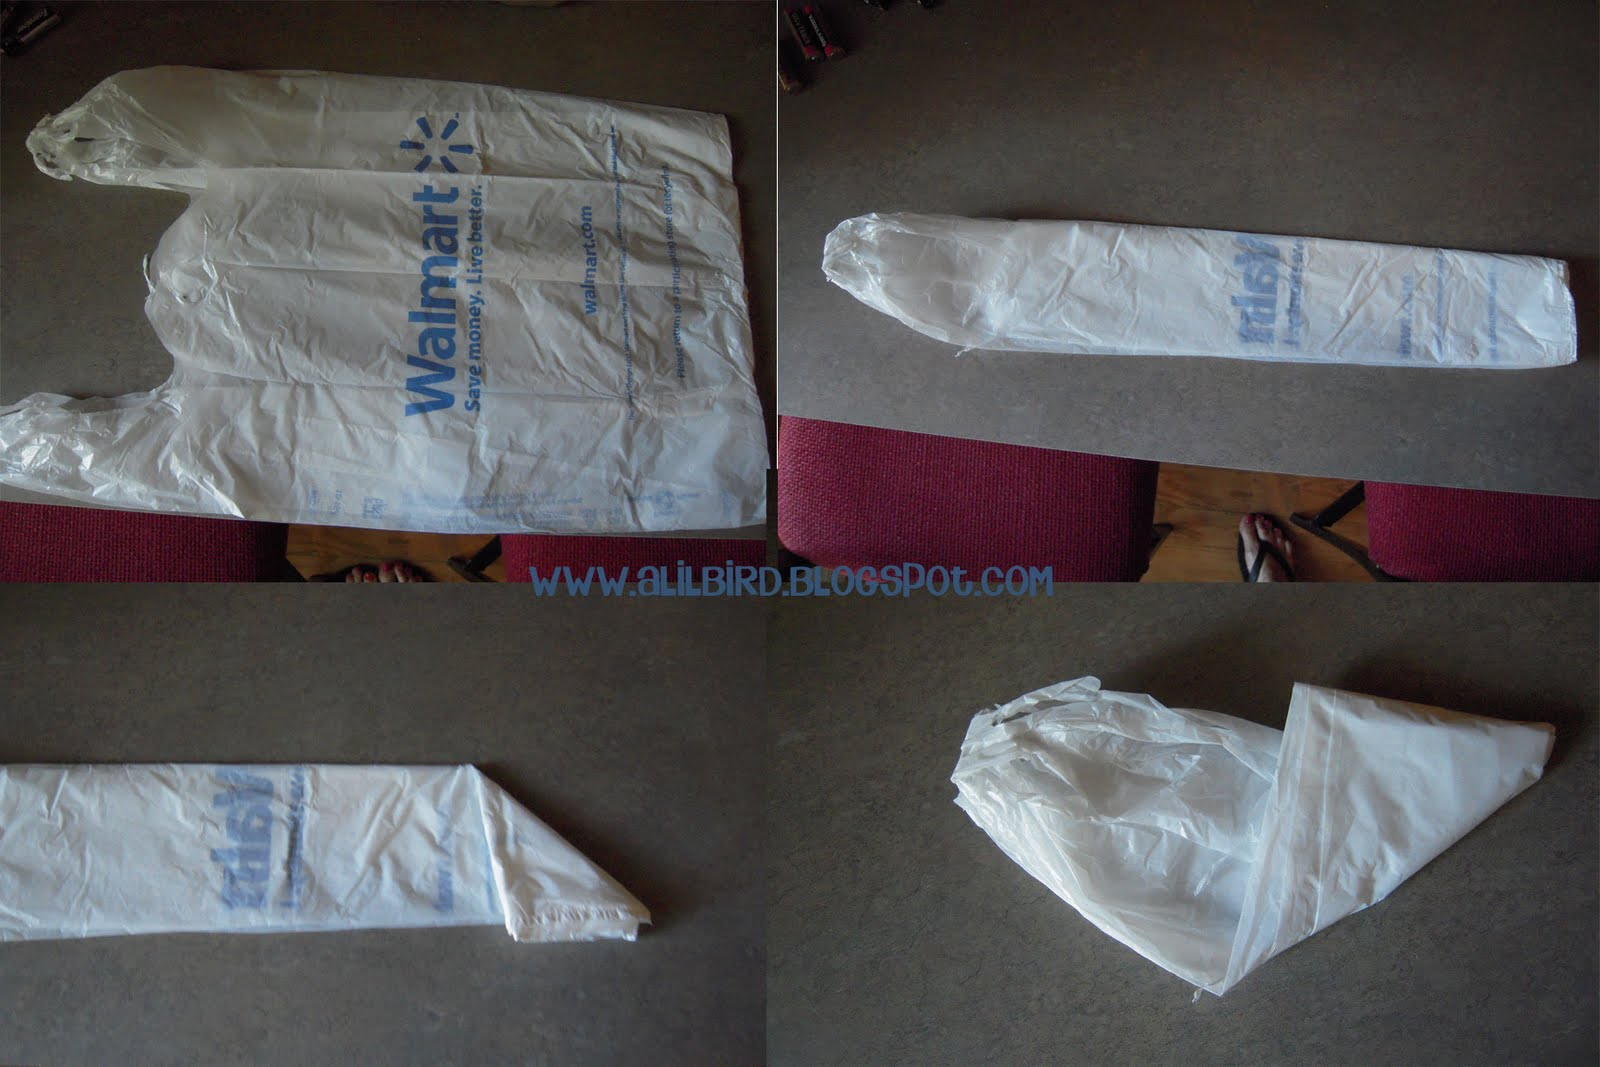 plastic grocery bags Store supply warehouse stocks all its plastic bags for same-day shipment including shopping bags wholesale, retail plastic bags, t-shirt bags and more.